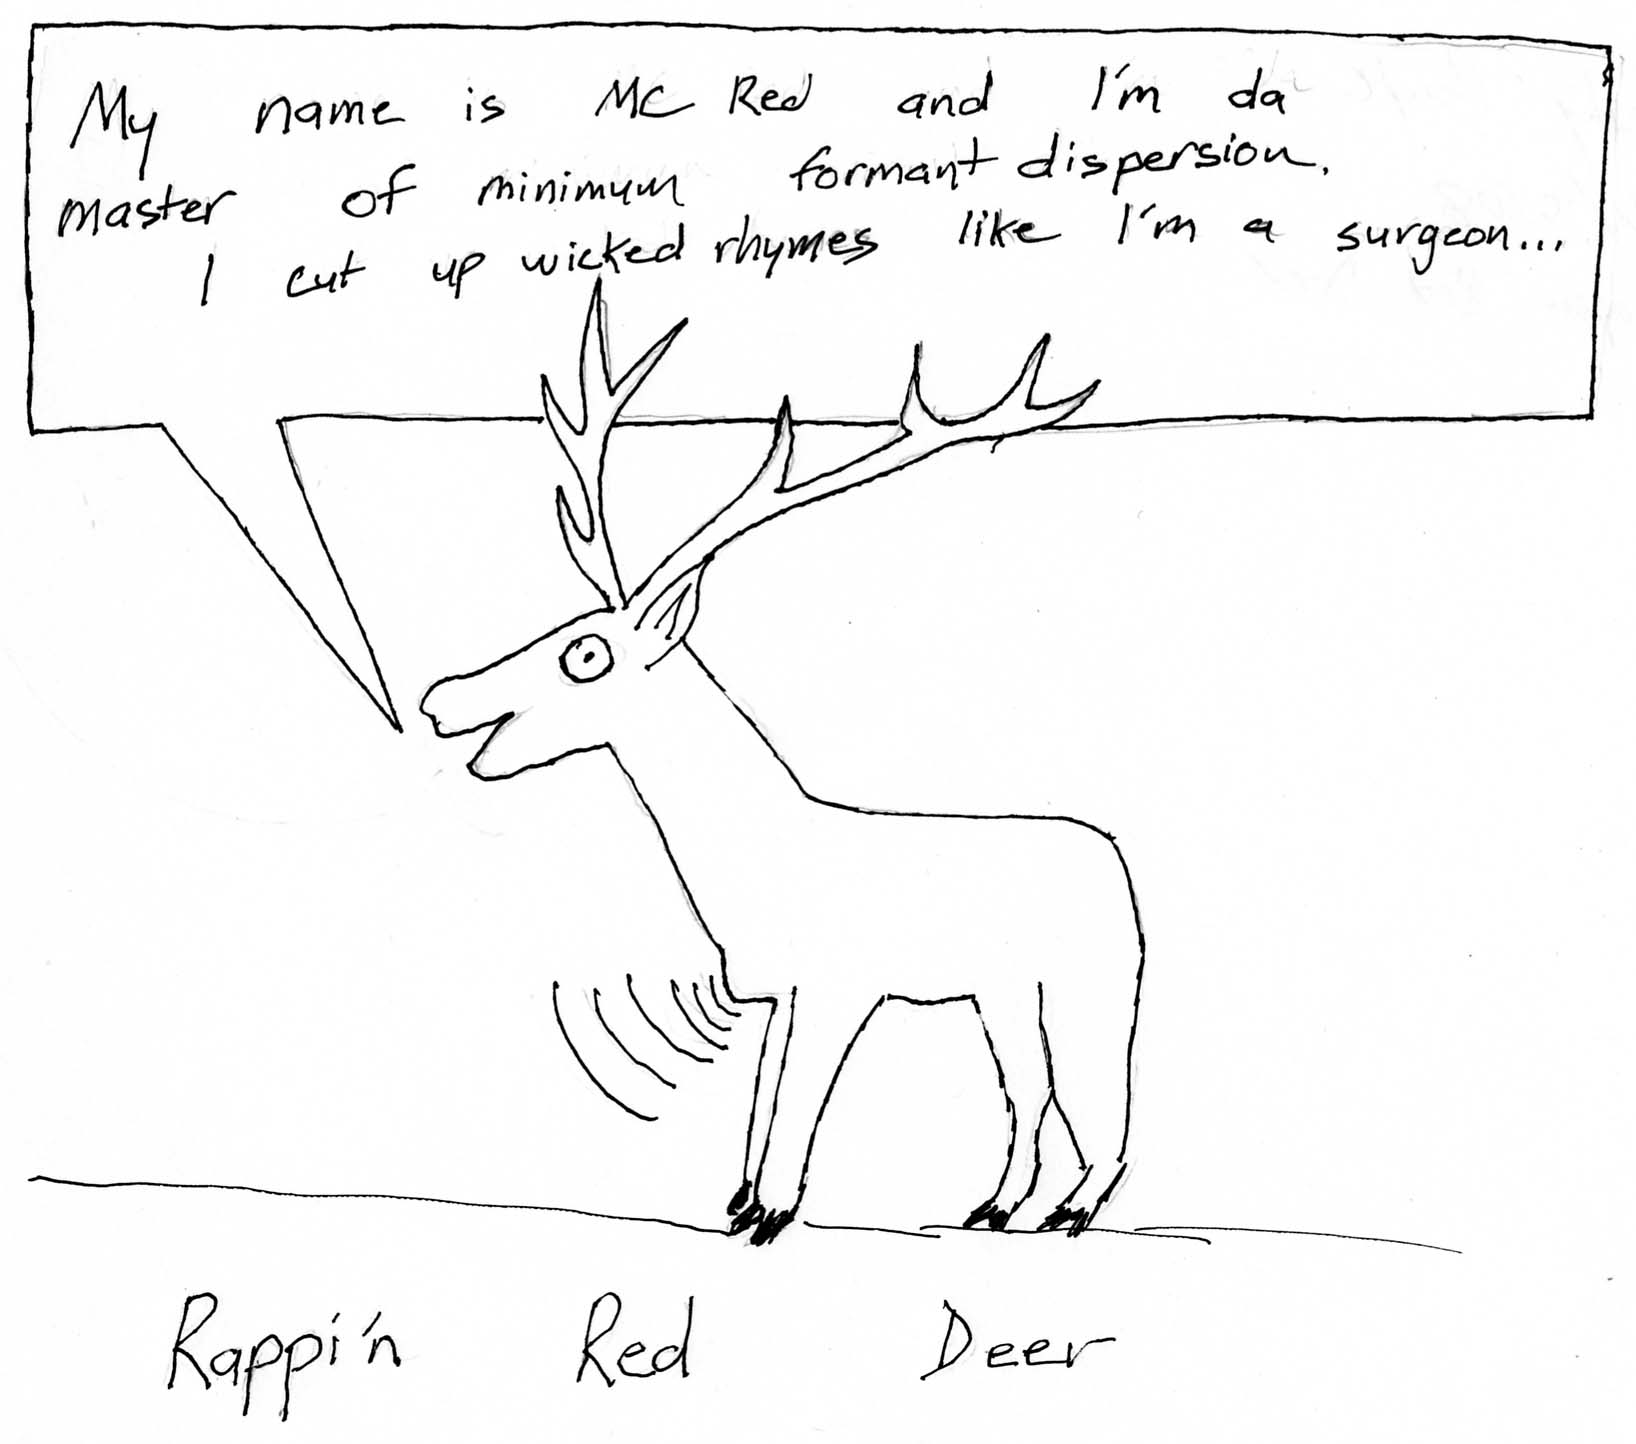 hight resolution of rappin red deer